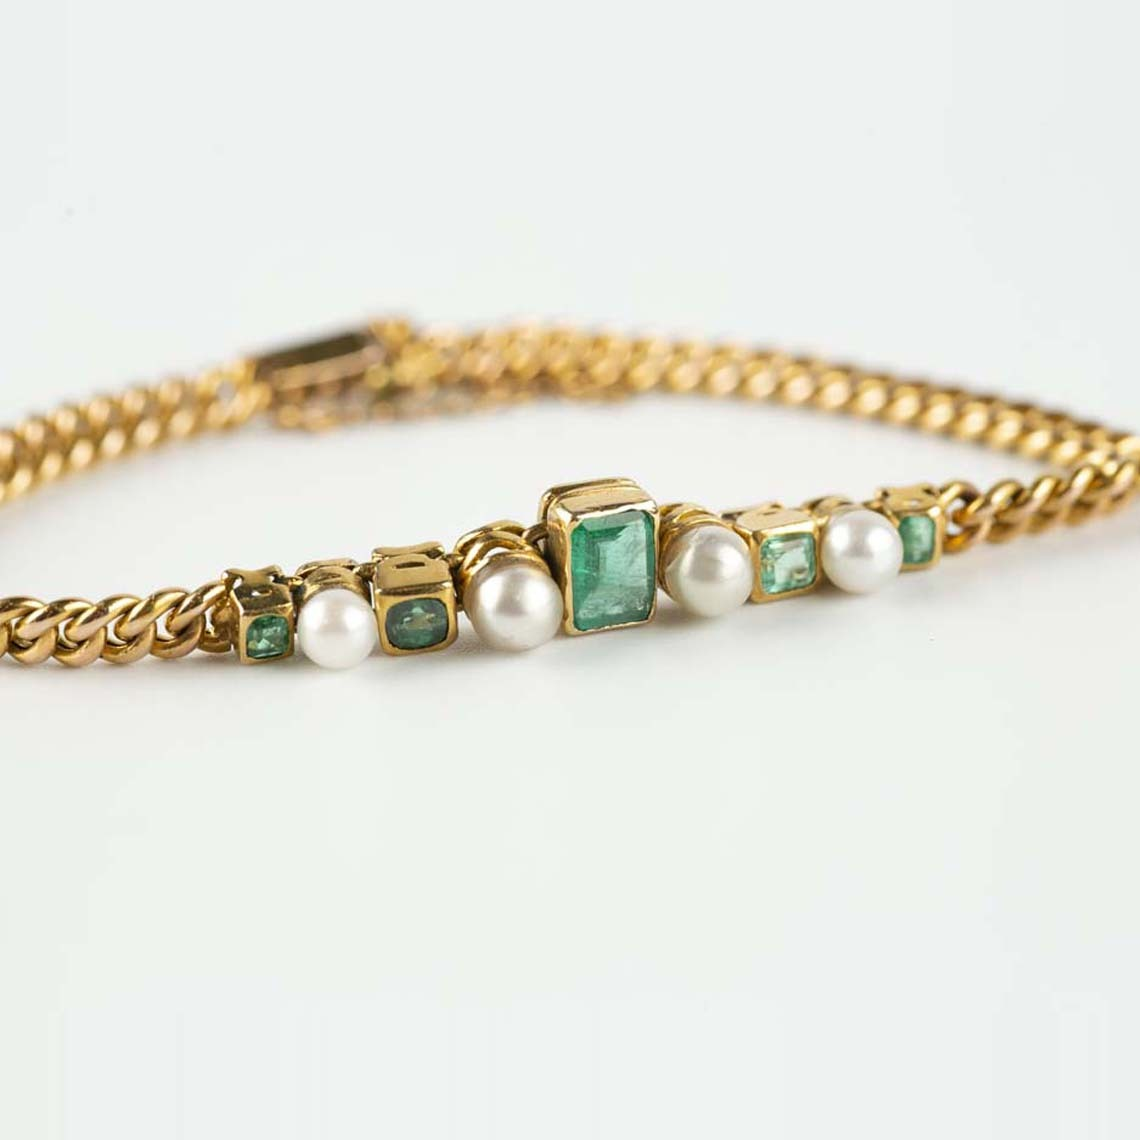 Vintage pearl and emerald bracelet